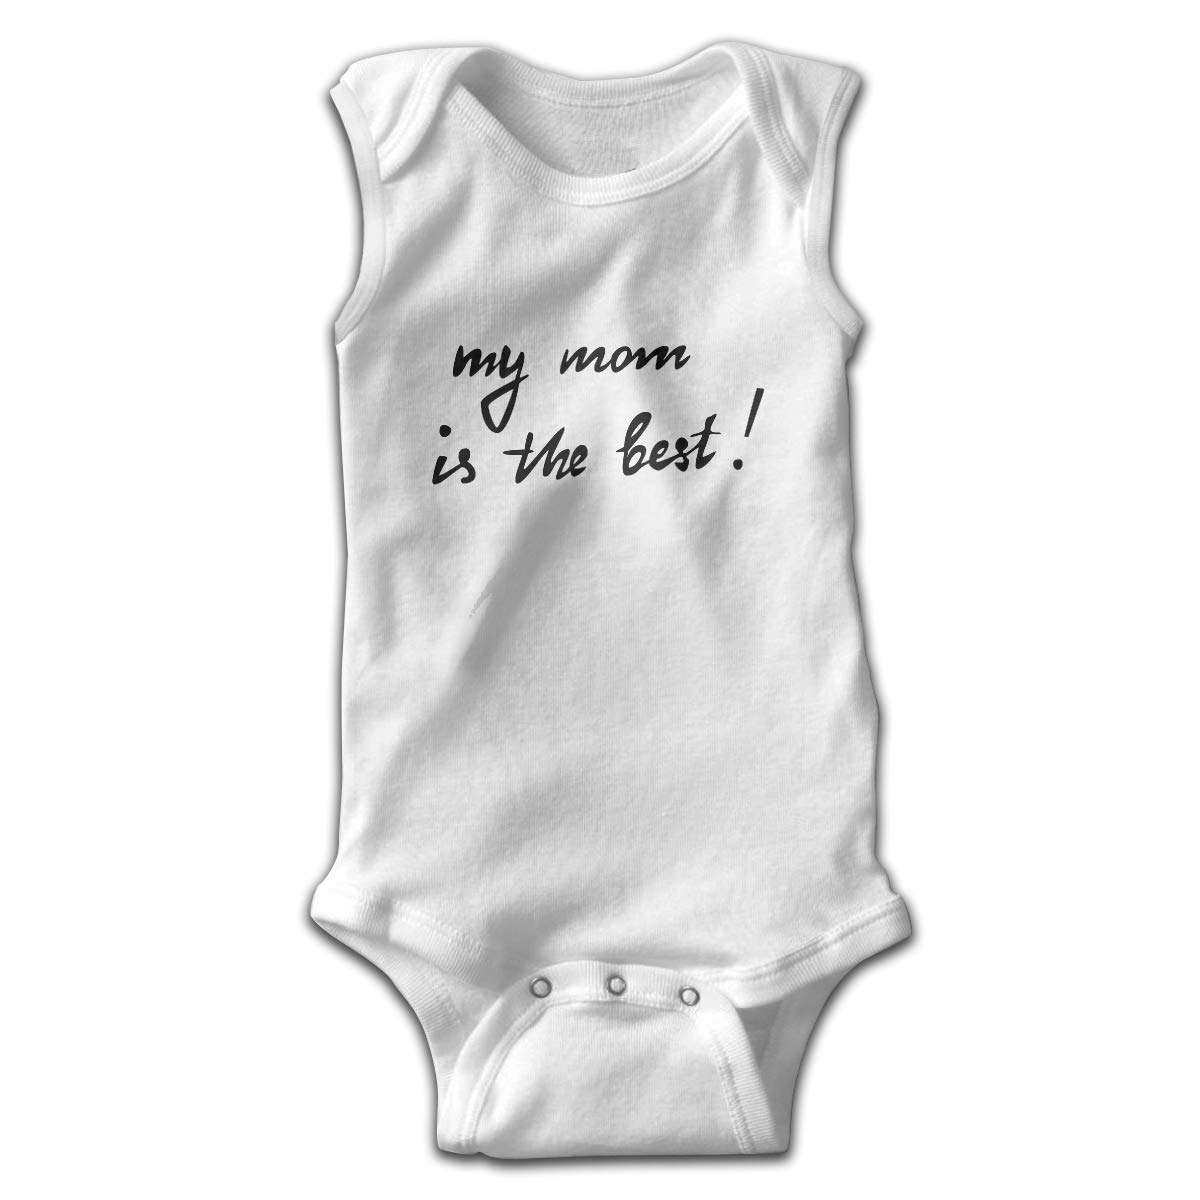 FAFU/&SKY My Mom is The Best Newborn Baby Clothes Bodysuit Sleeveless Summer for Baby